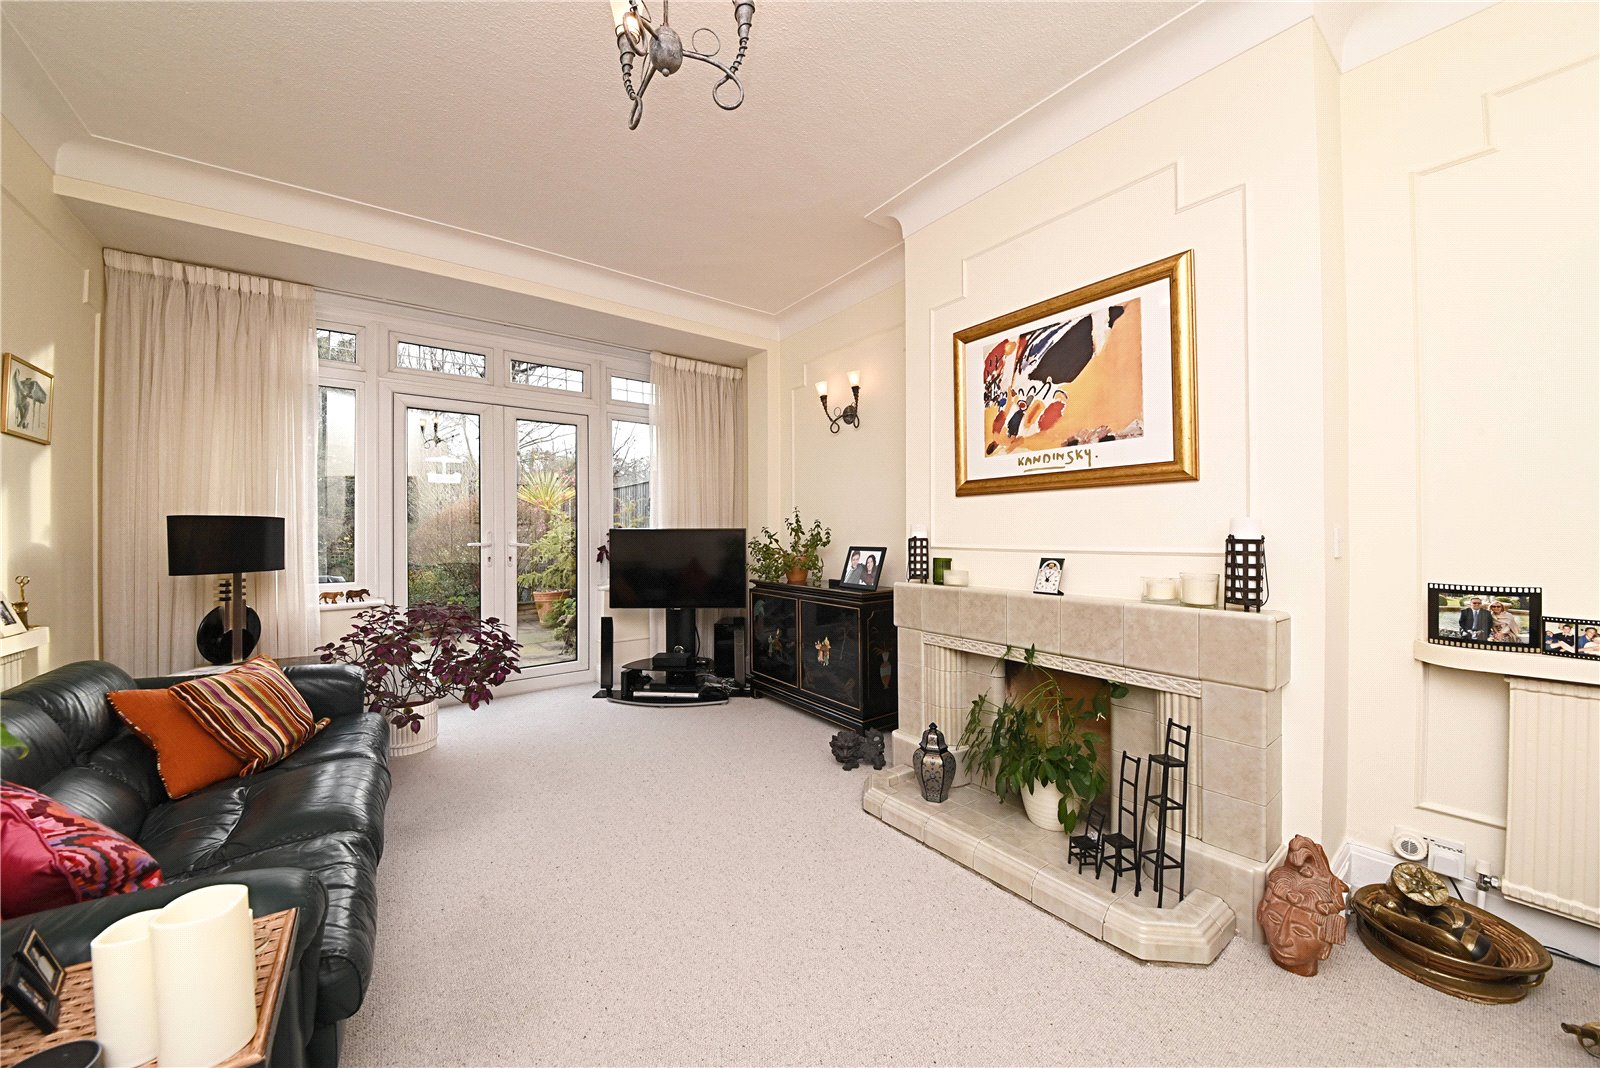 4 bed house for sale in Hendon, NW4 1LJ 7